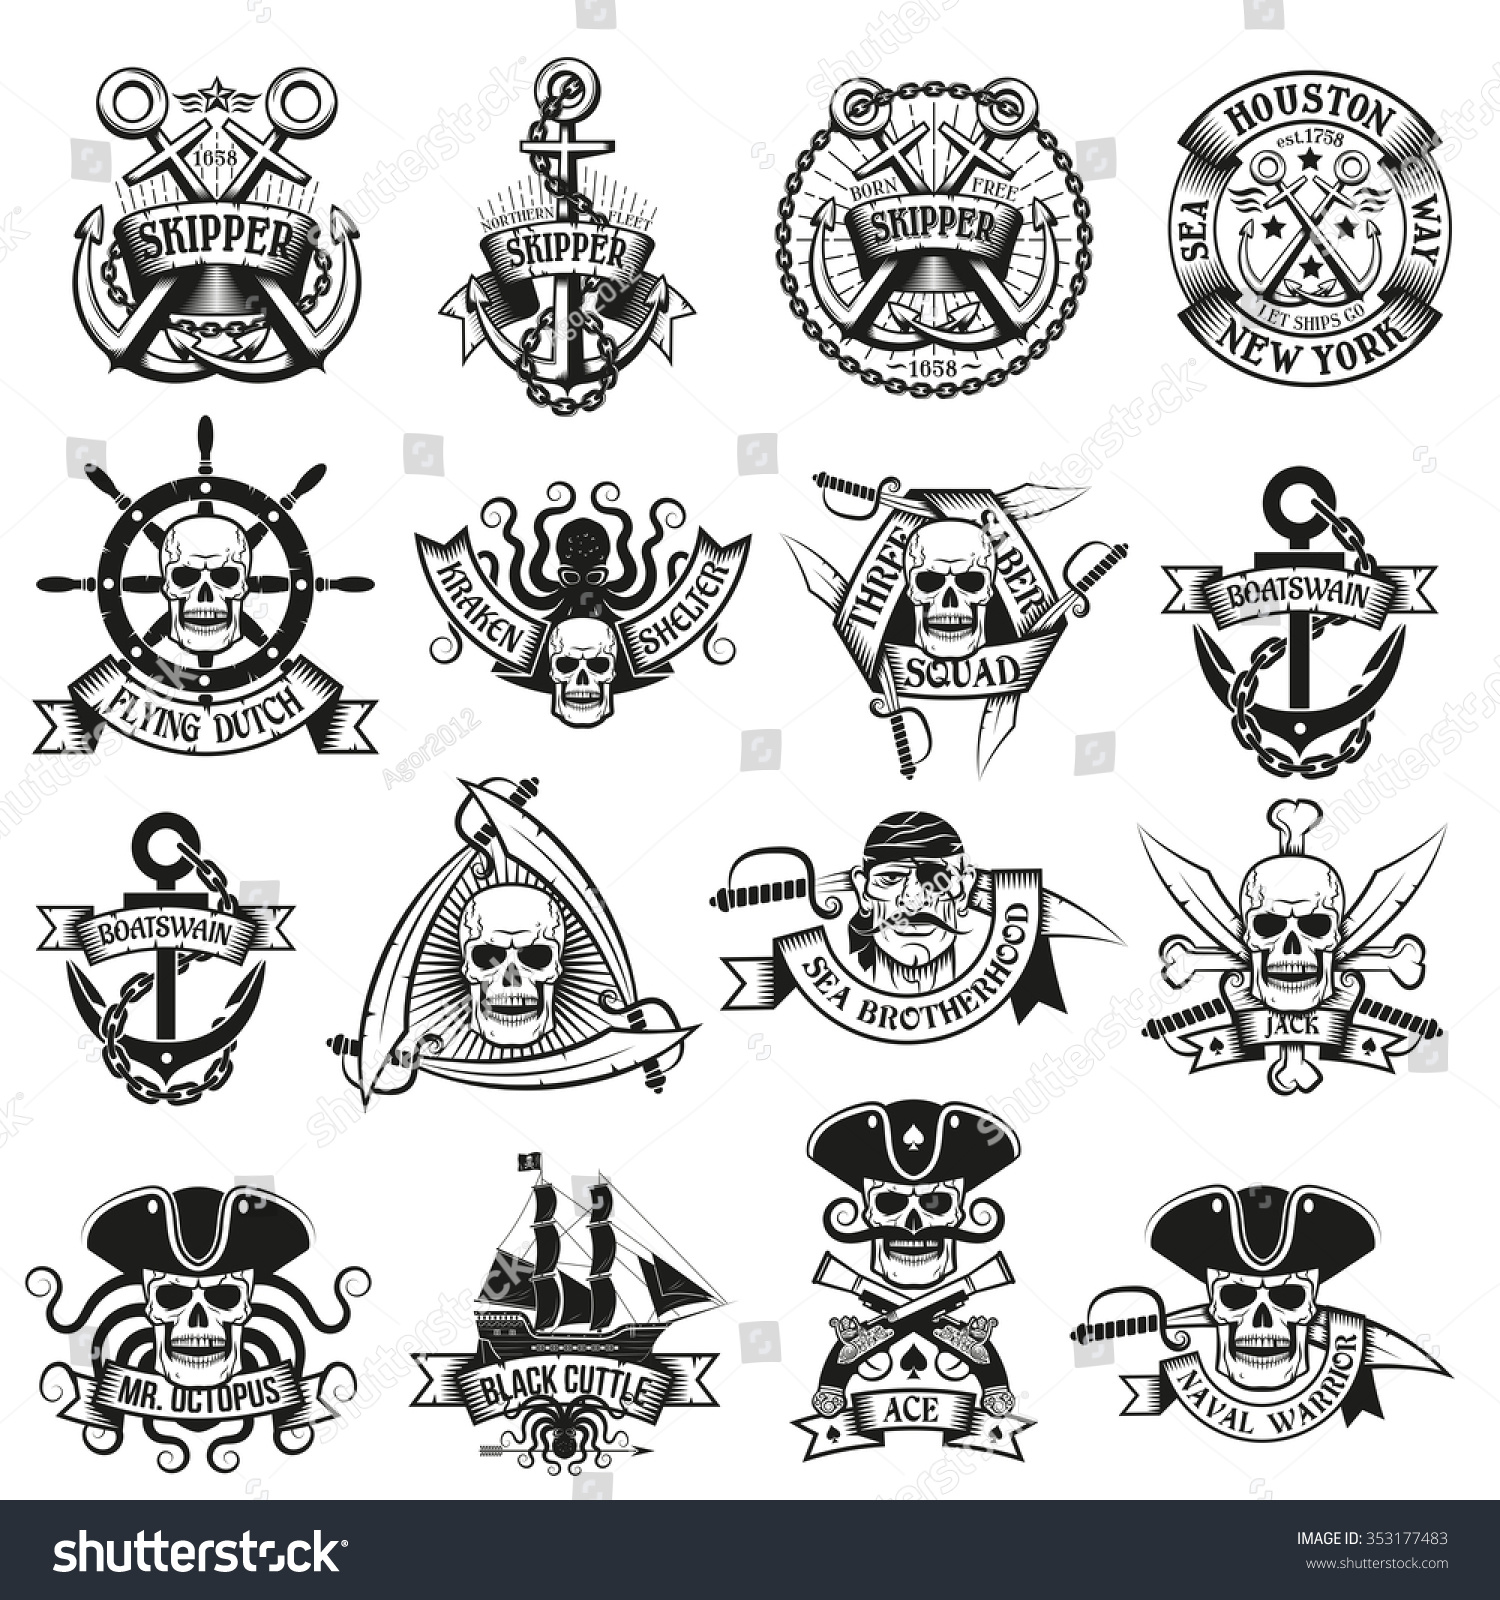 Stock Photo Collection Of Pirate Tattoos With Skulls Swords Belts